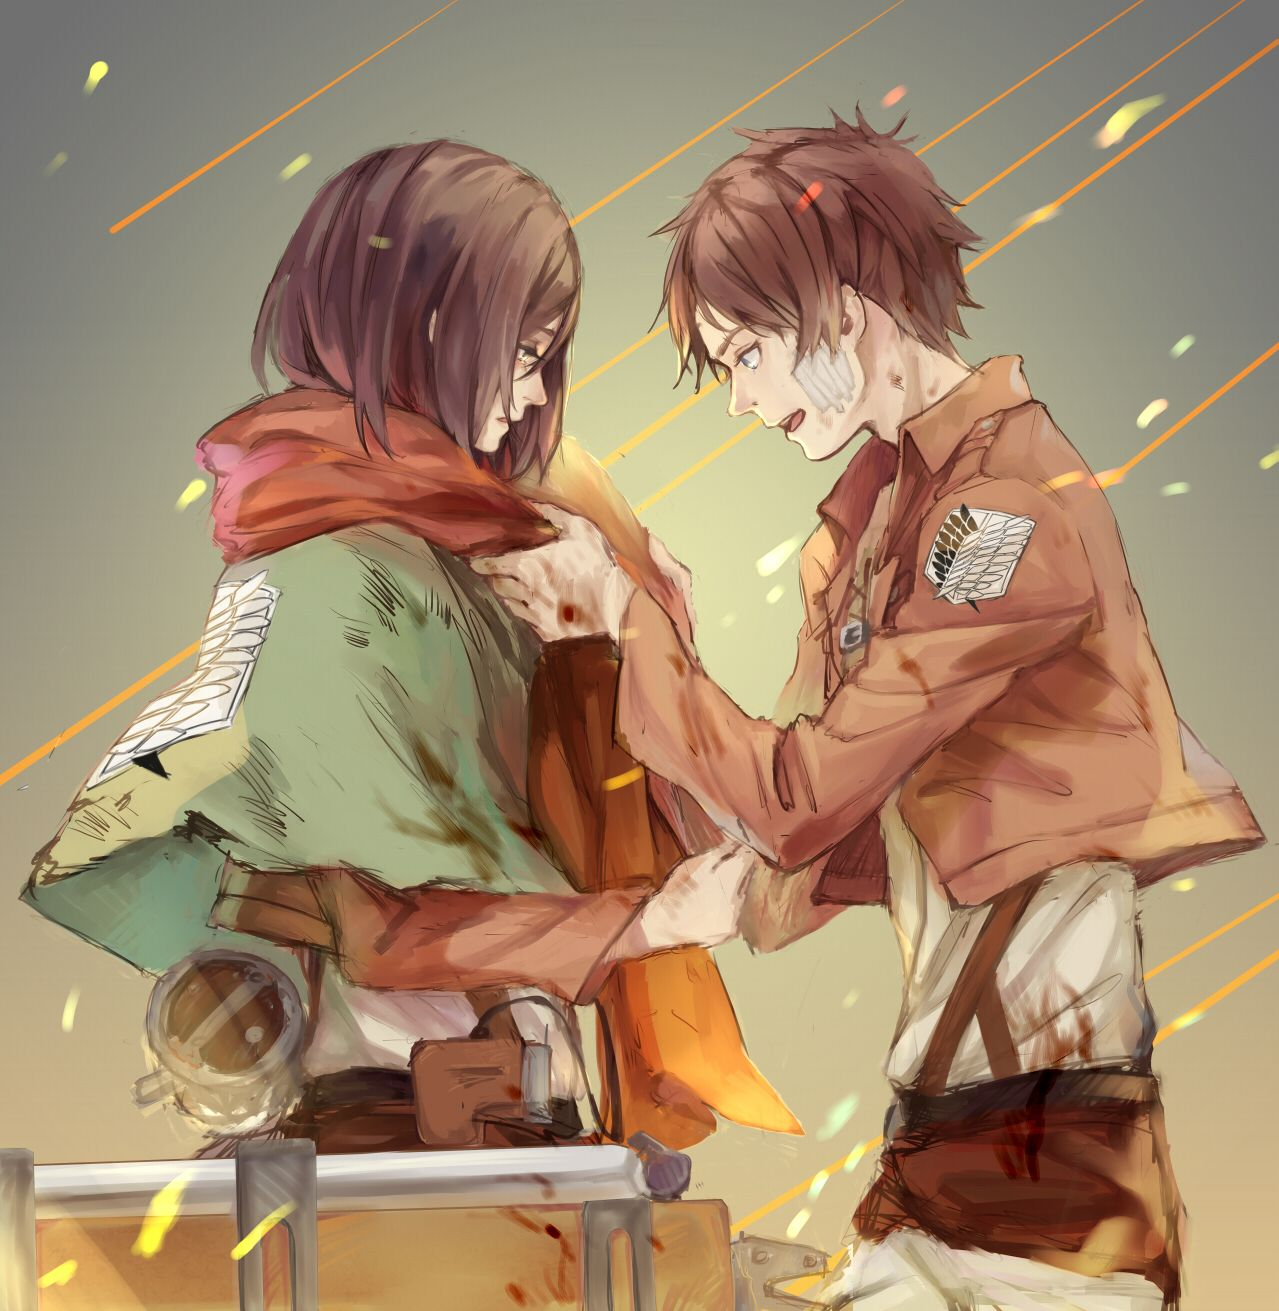 Putting The V Back In Voyeurism Attack On Titan Anime Attack On Titan Eren Eren And Mikasa